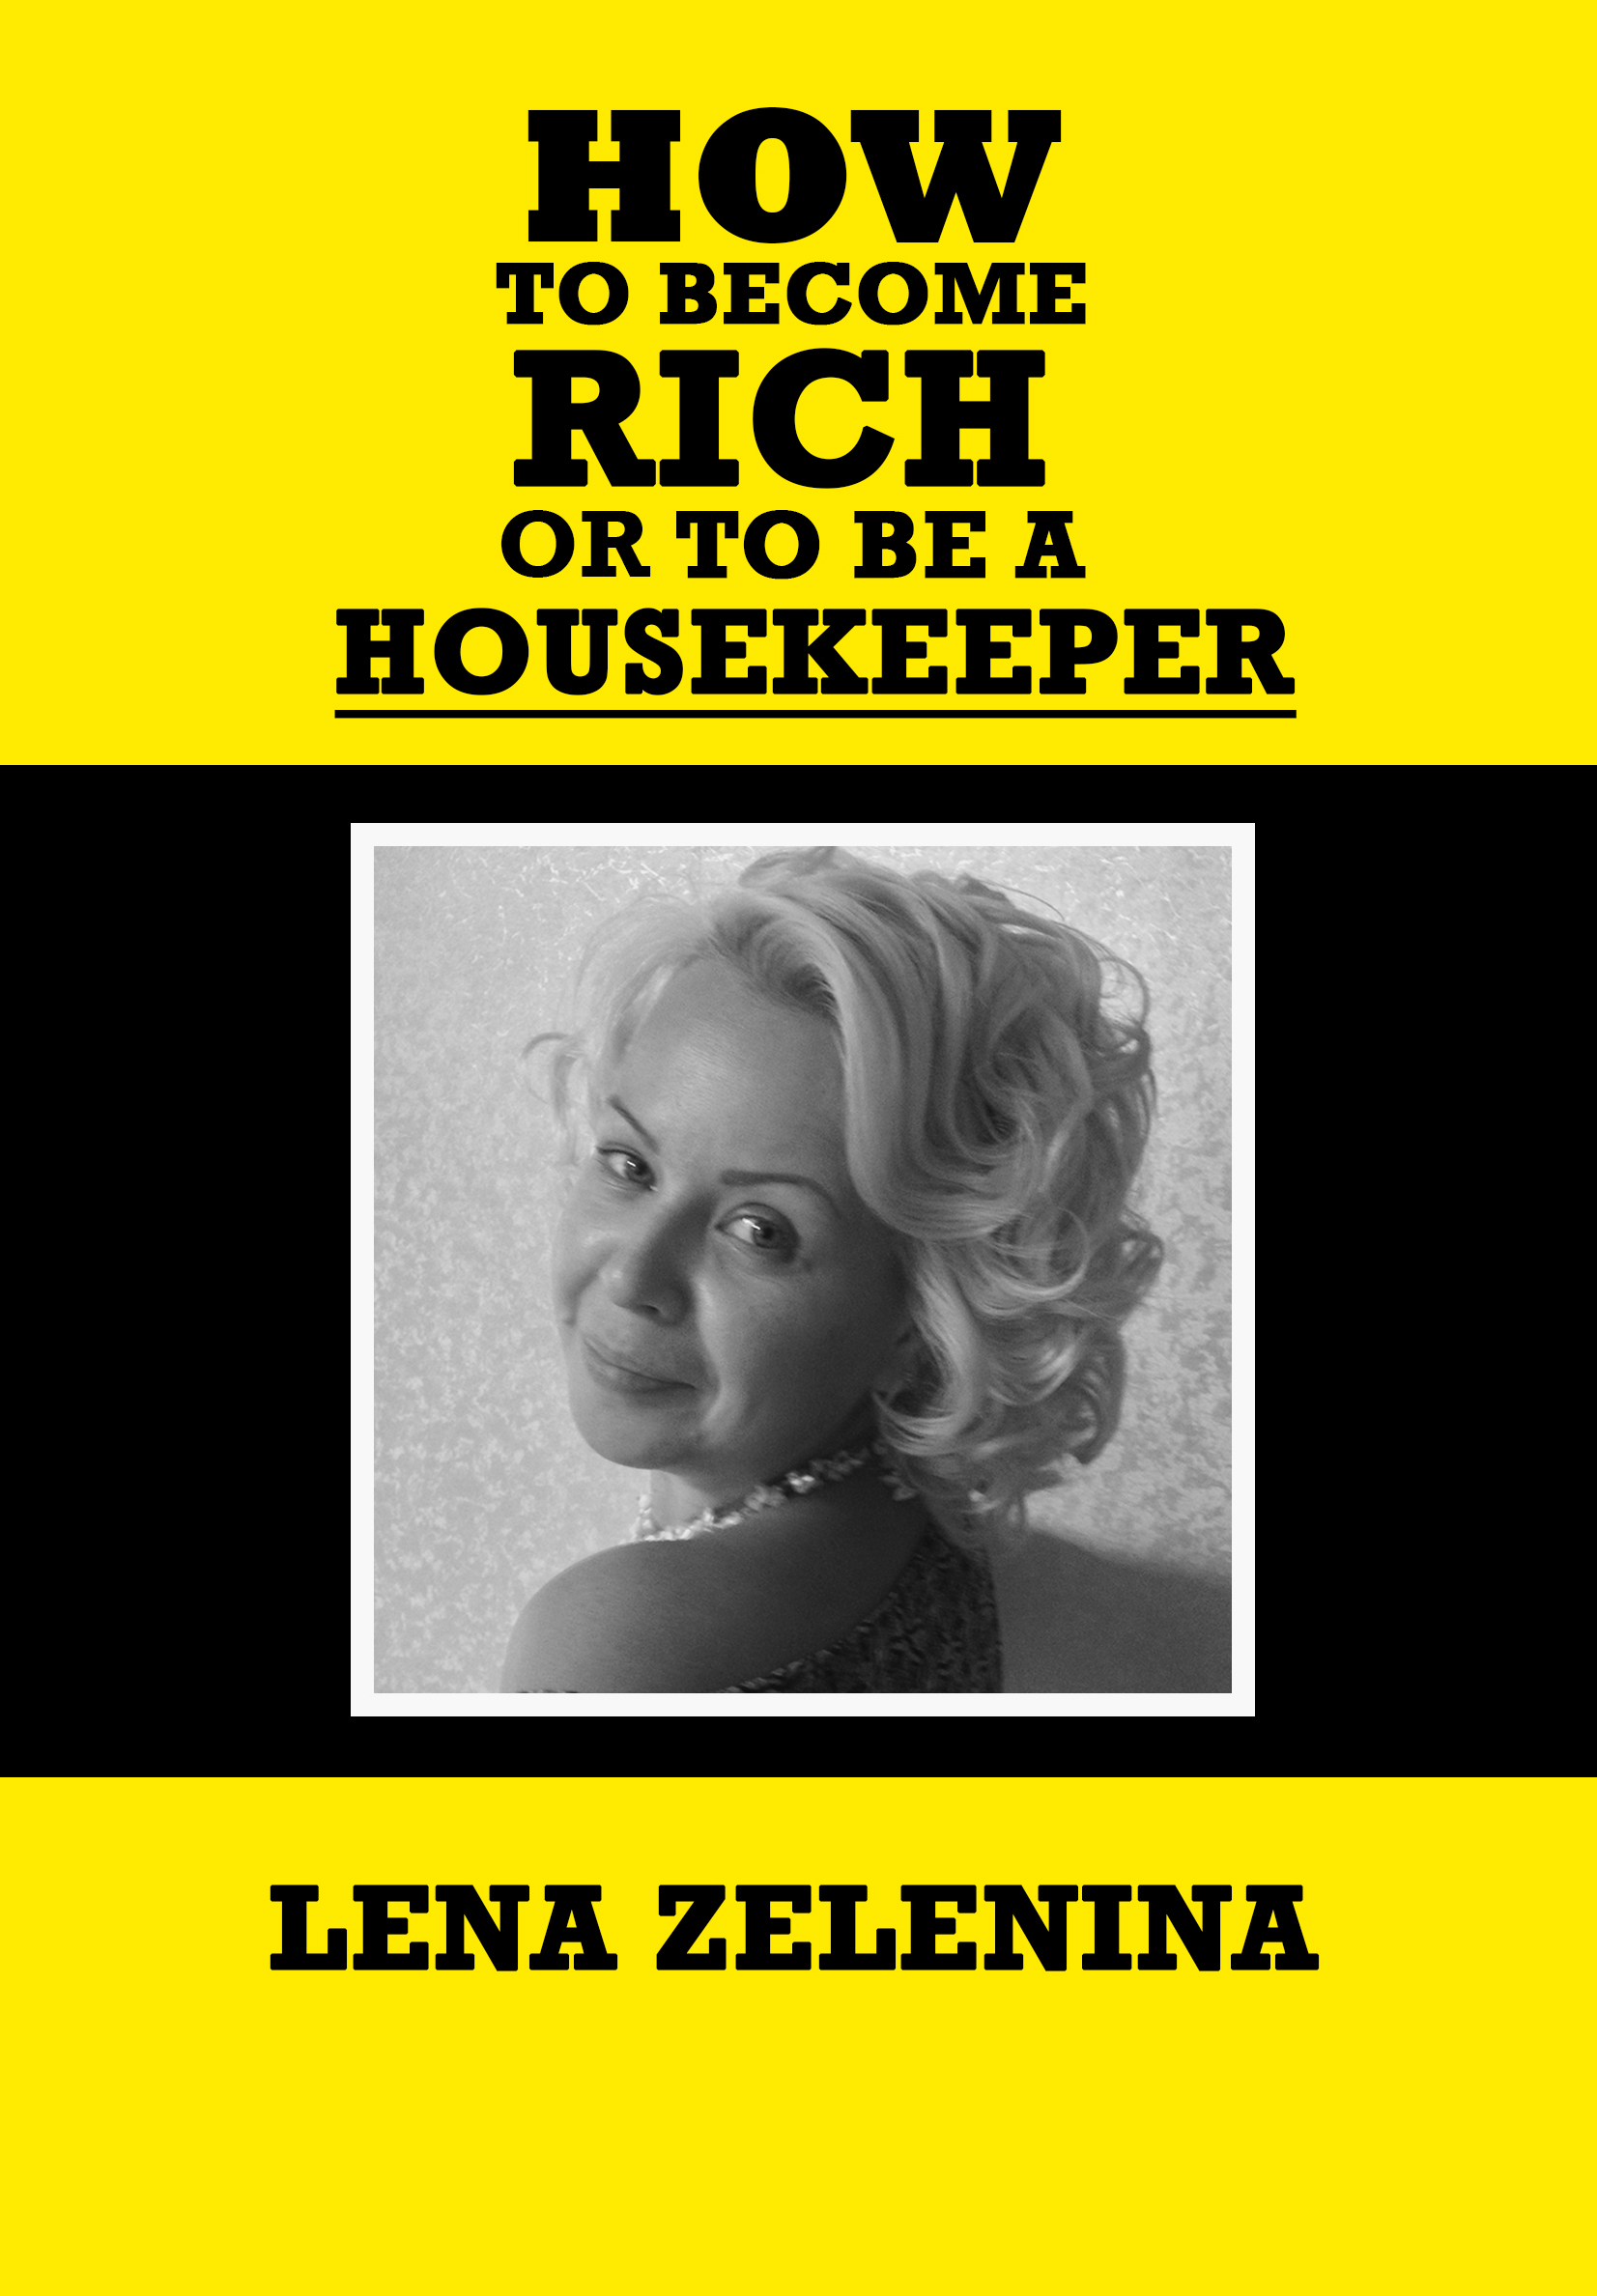 Helena Zelenina How to become rich or to be a housekeeper helena zelenina how to become rich or to be a housekeeper